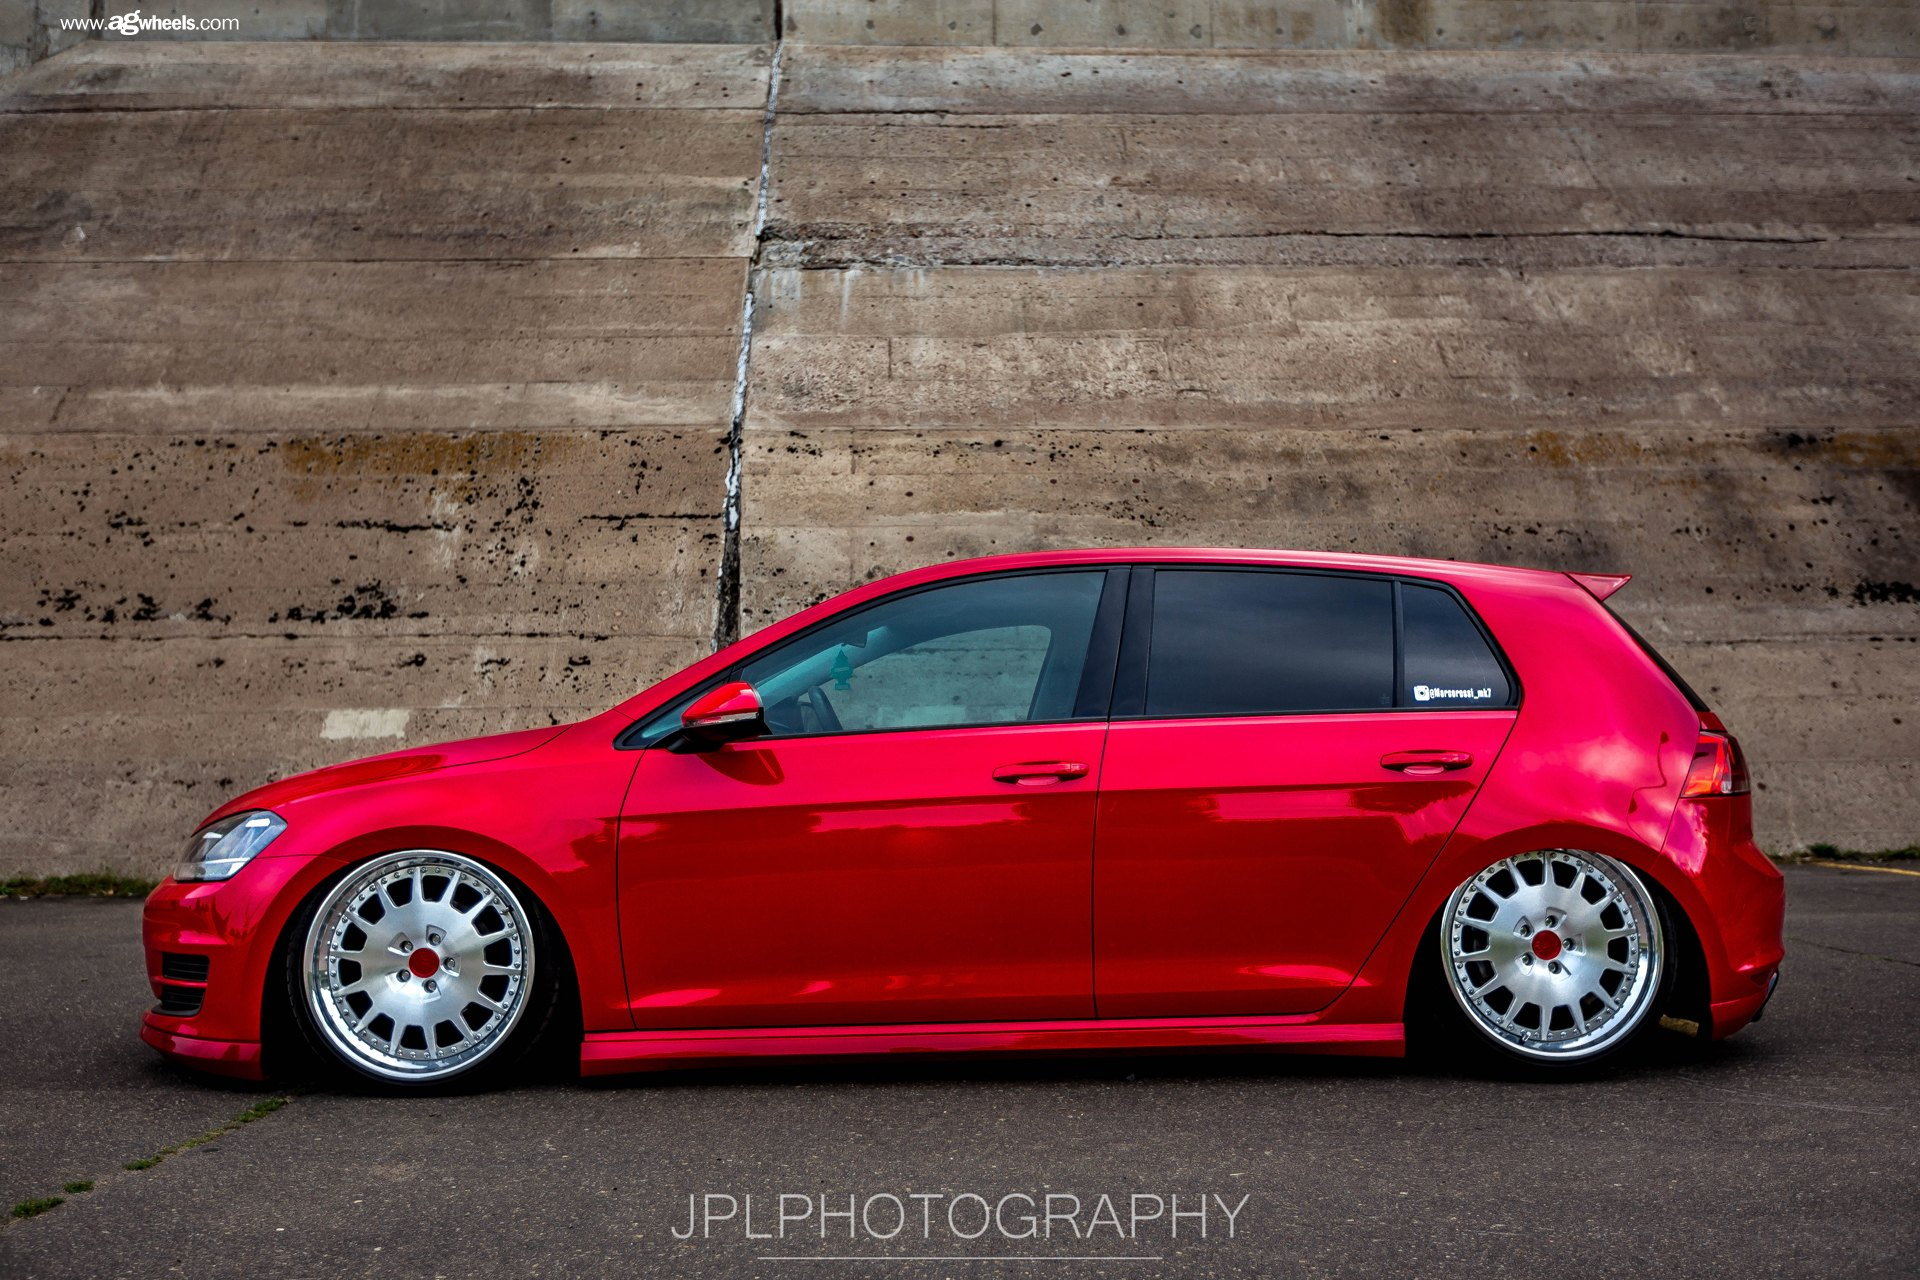 vw golf mk7 on air suspension and avant garde rims gallery. Black Bedroom Furniture Sets. Home Design Ideas